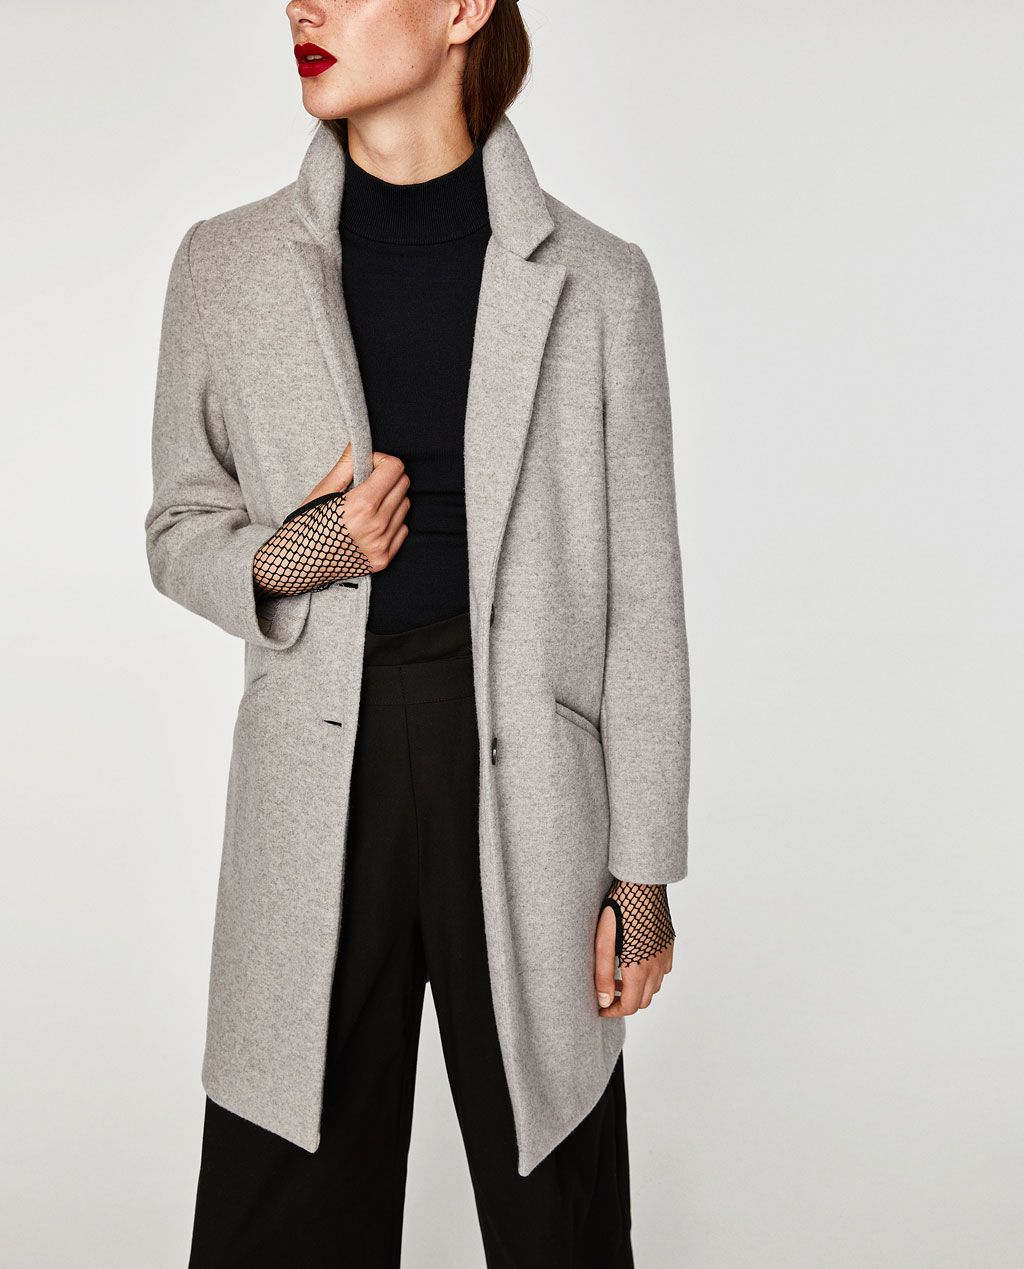 Image 2 of SUPER SOFT COAT from Zara   Wear me.   Coat, Outerwear ... afd8c2a5e0